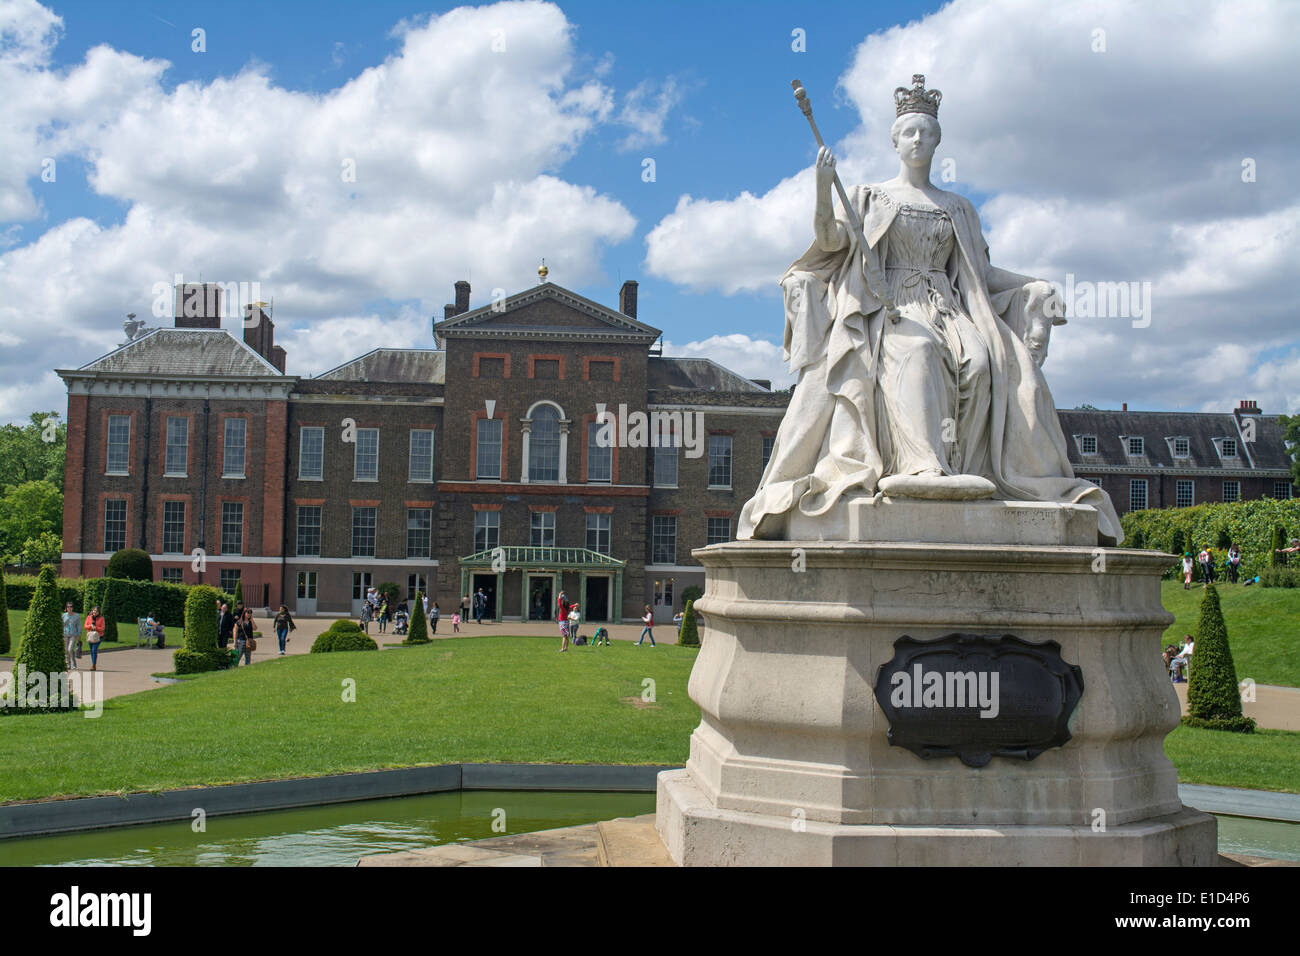 Statue of Queen Victoria outside of Kensington Palace a royal residence set in Kensington Gardens London England Stock Photo